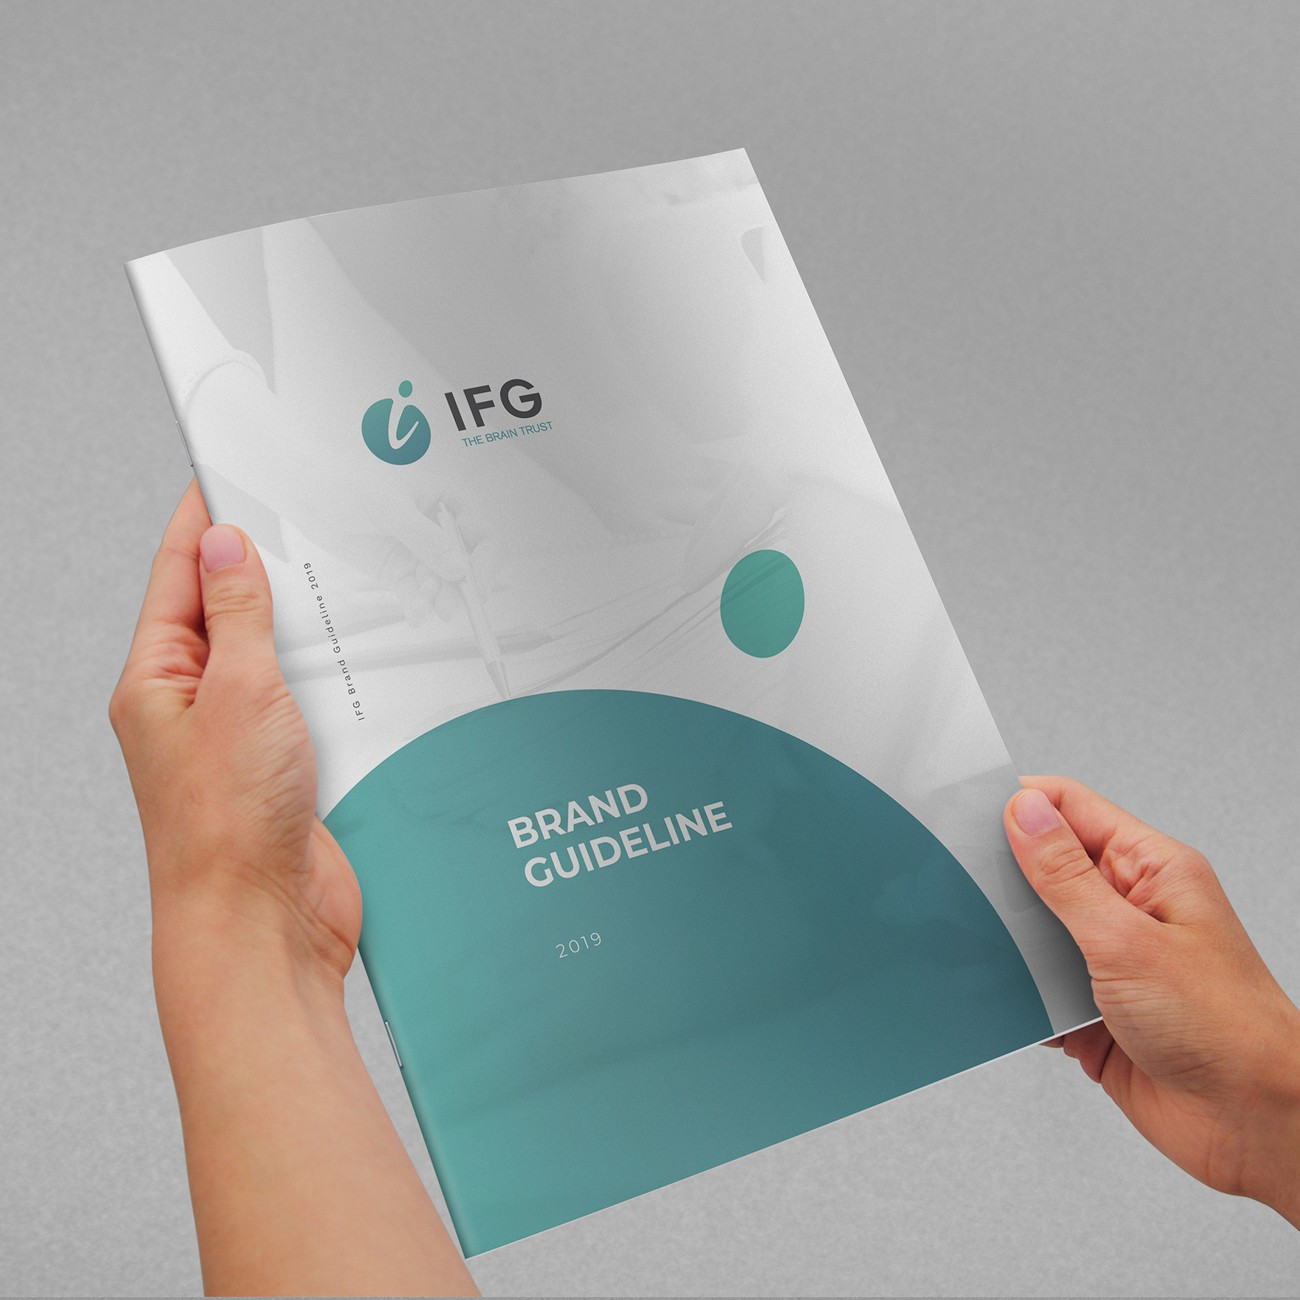 Brand Guide for IFG